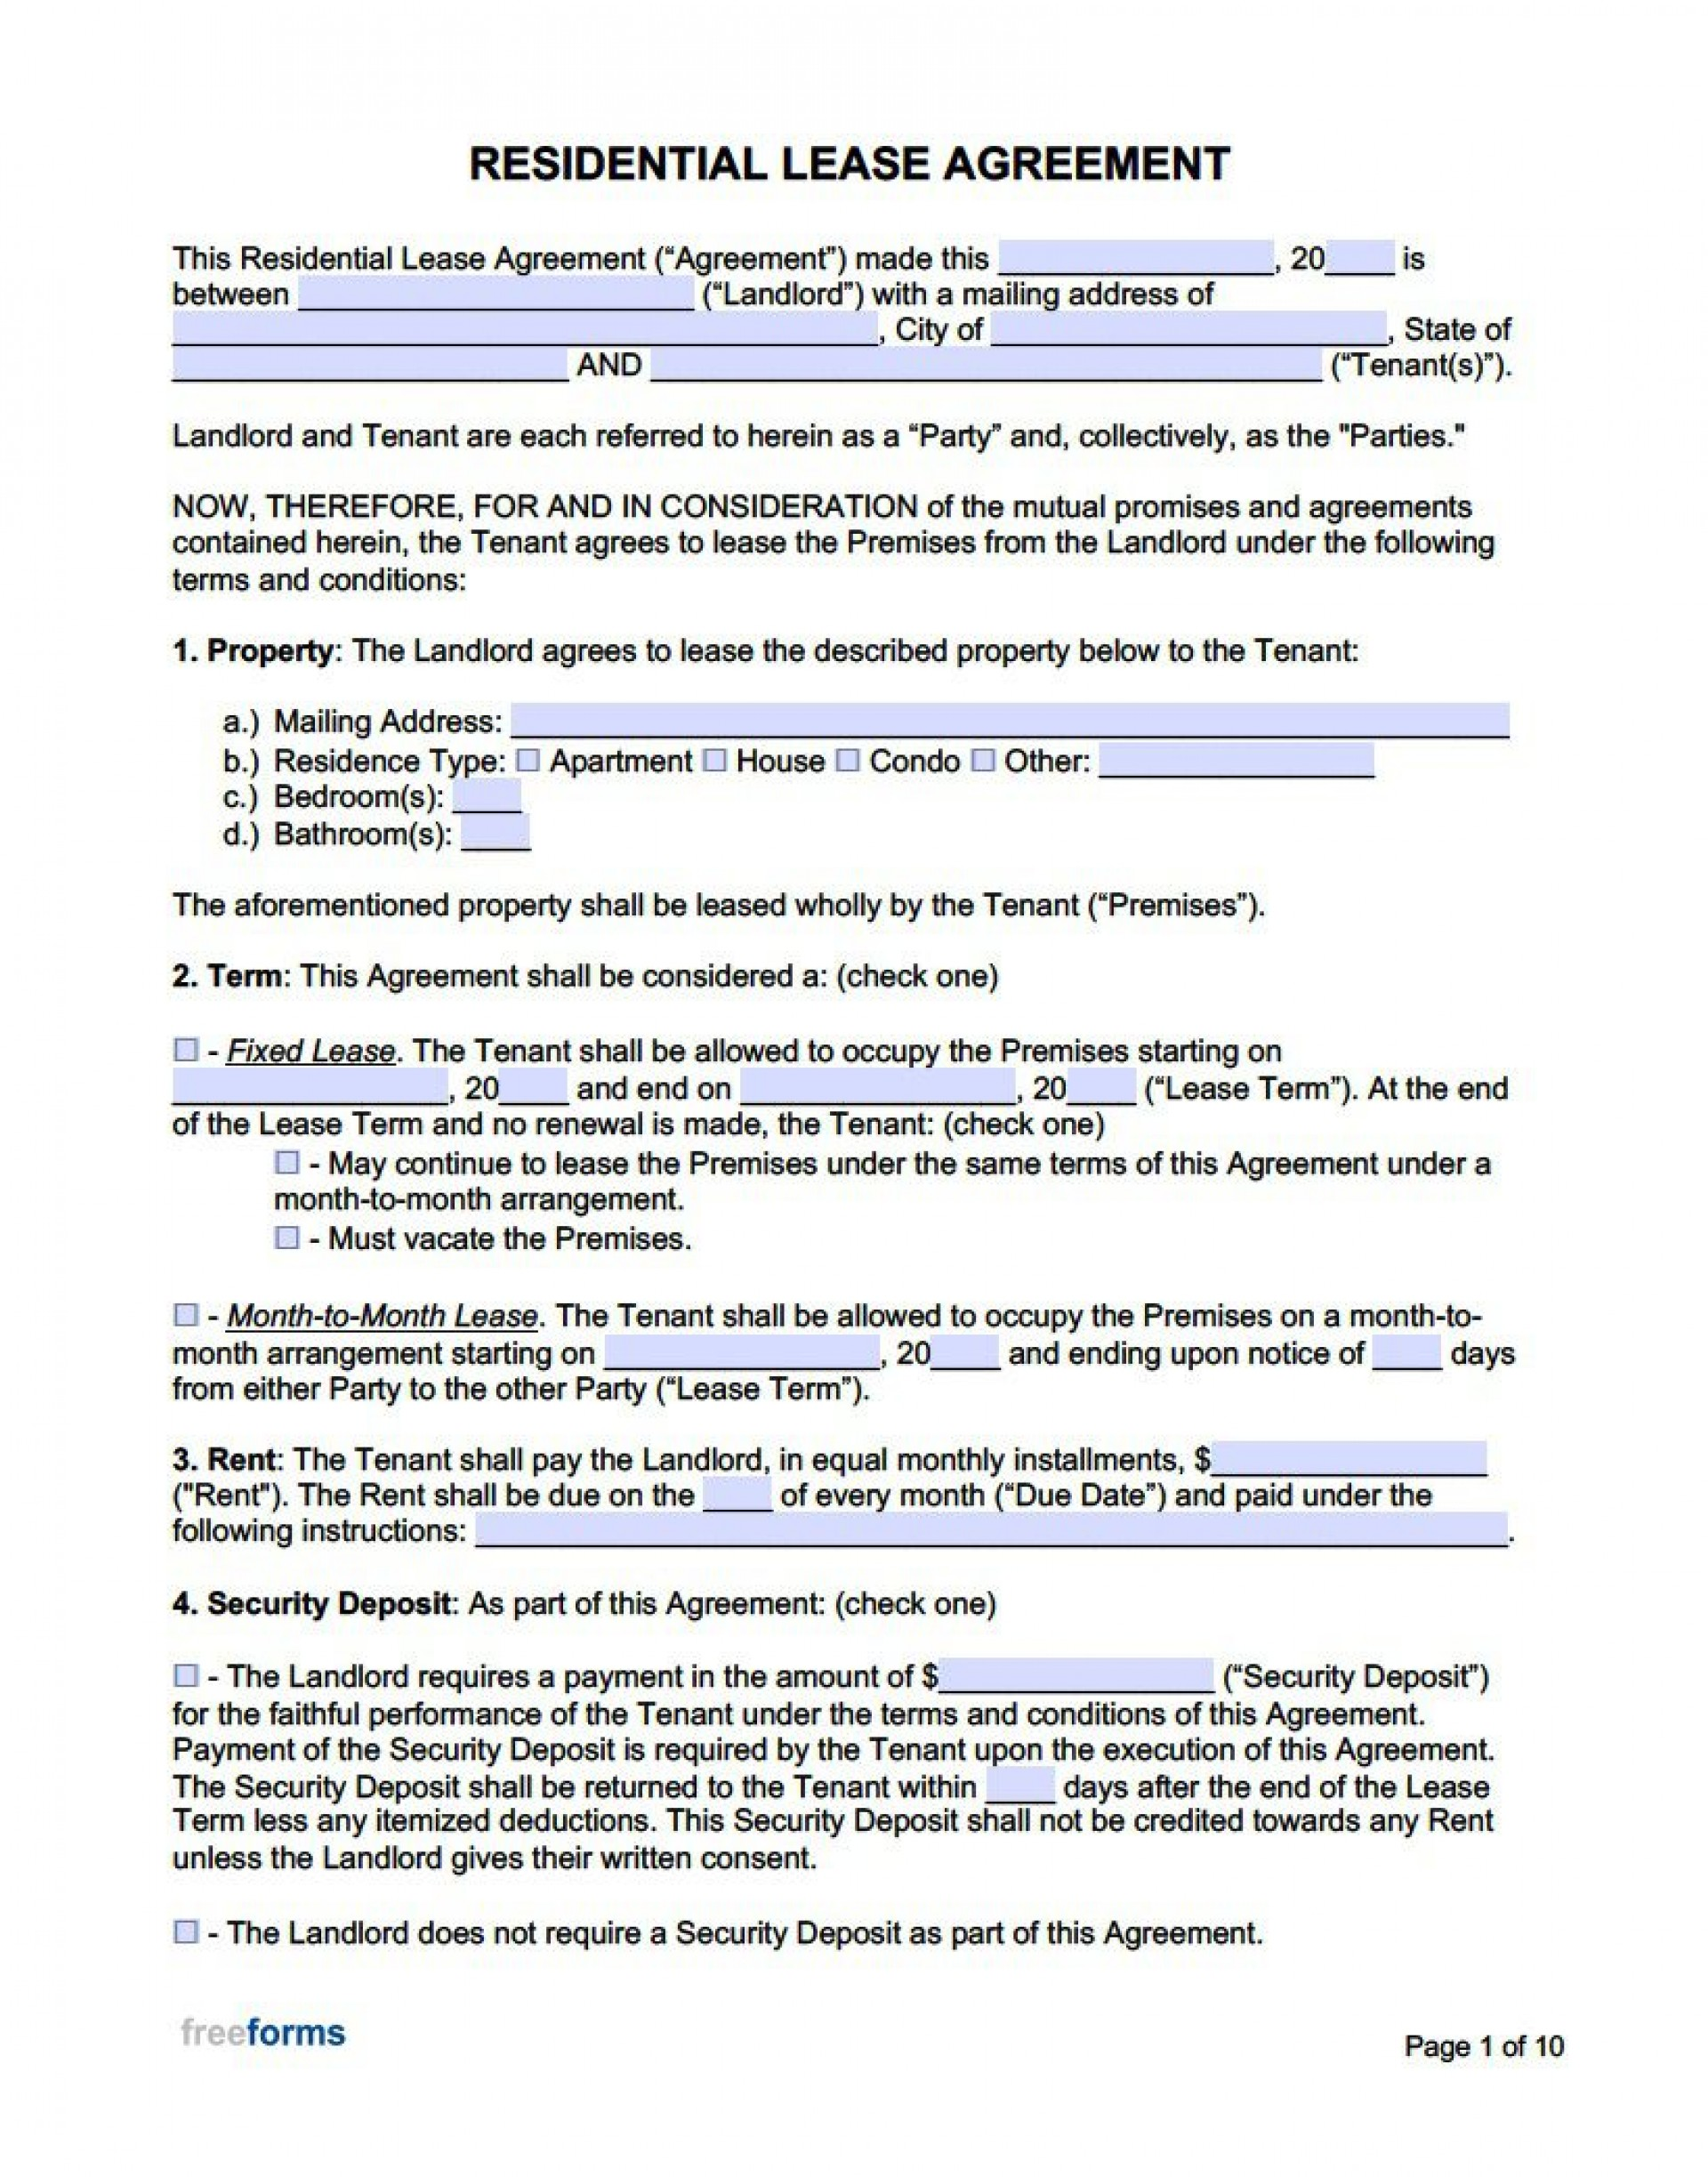 009 Dreaded Rent Lease Agreement Format Inspiration  Shop Rental In English Tamil Simple Form1920